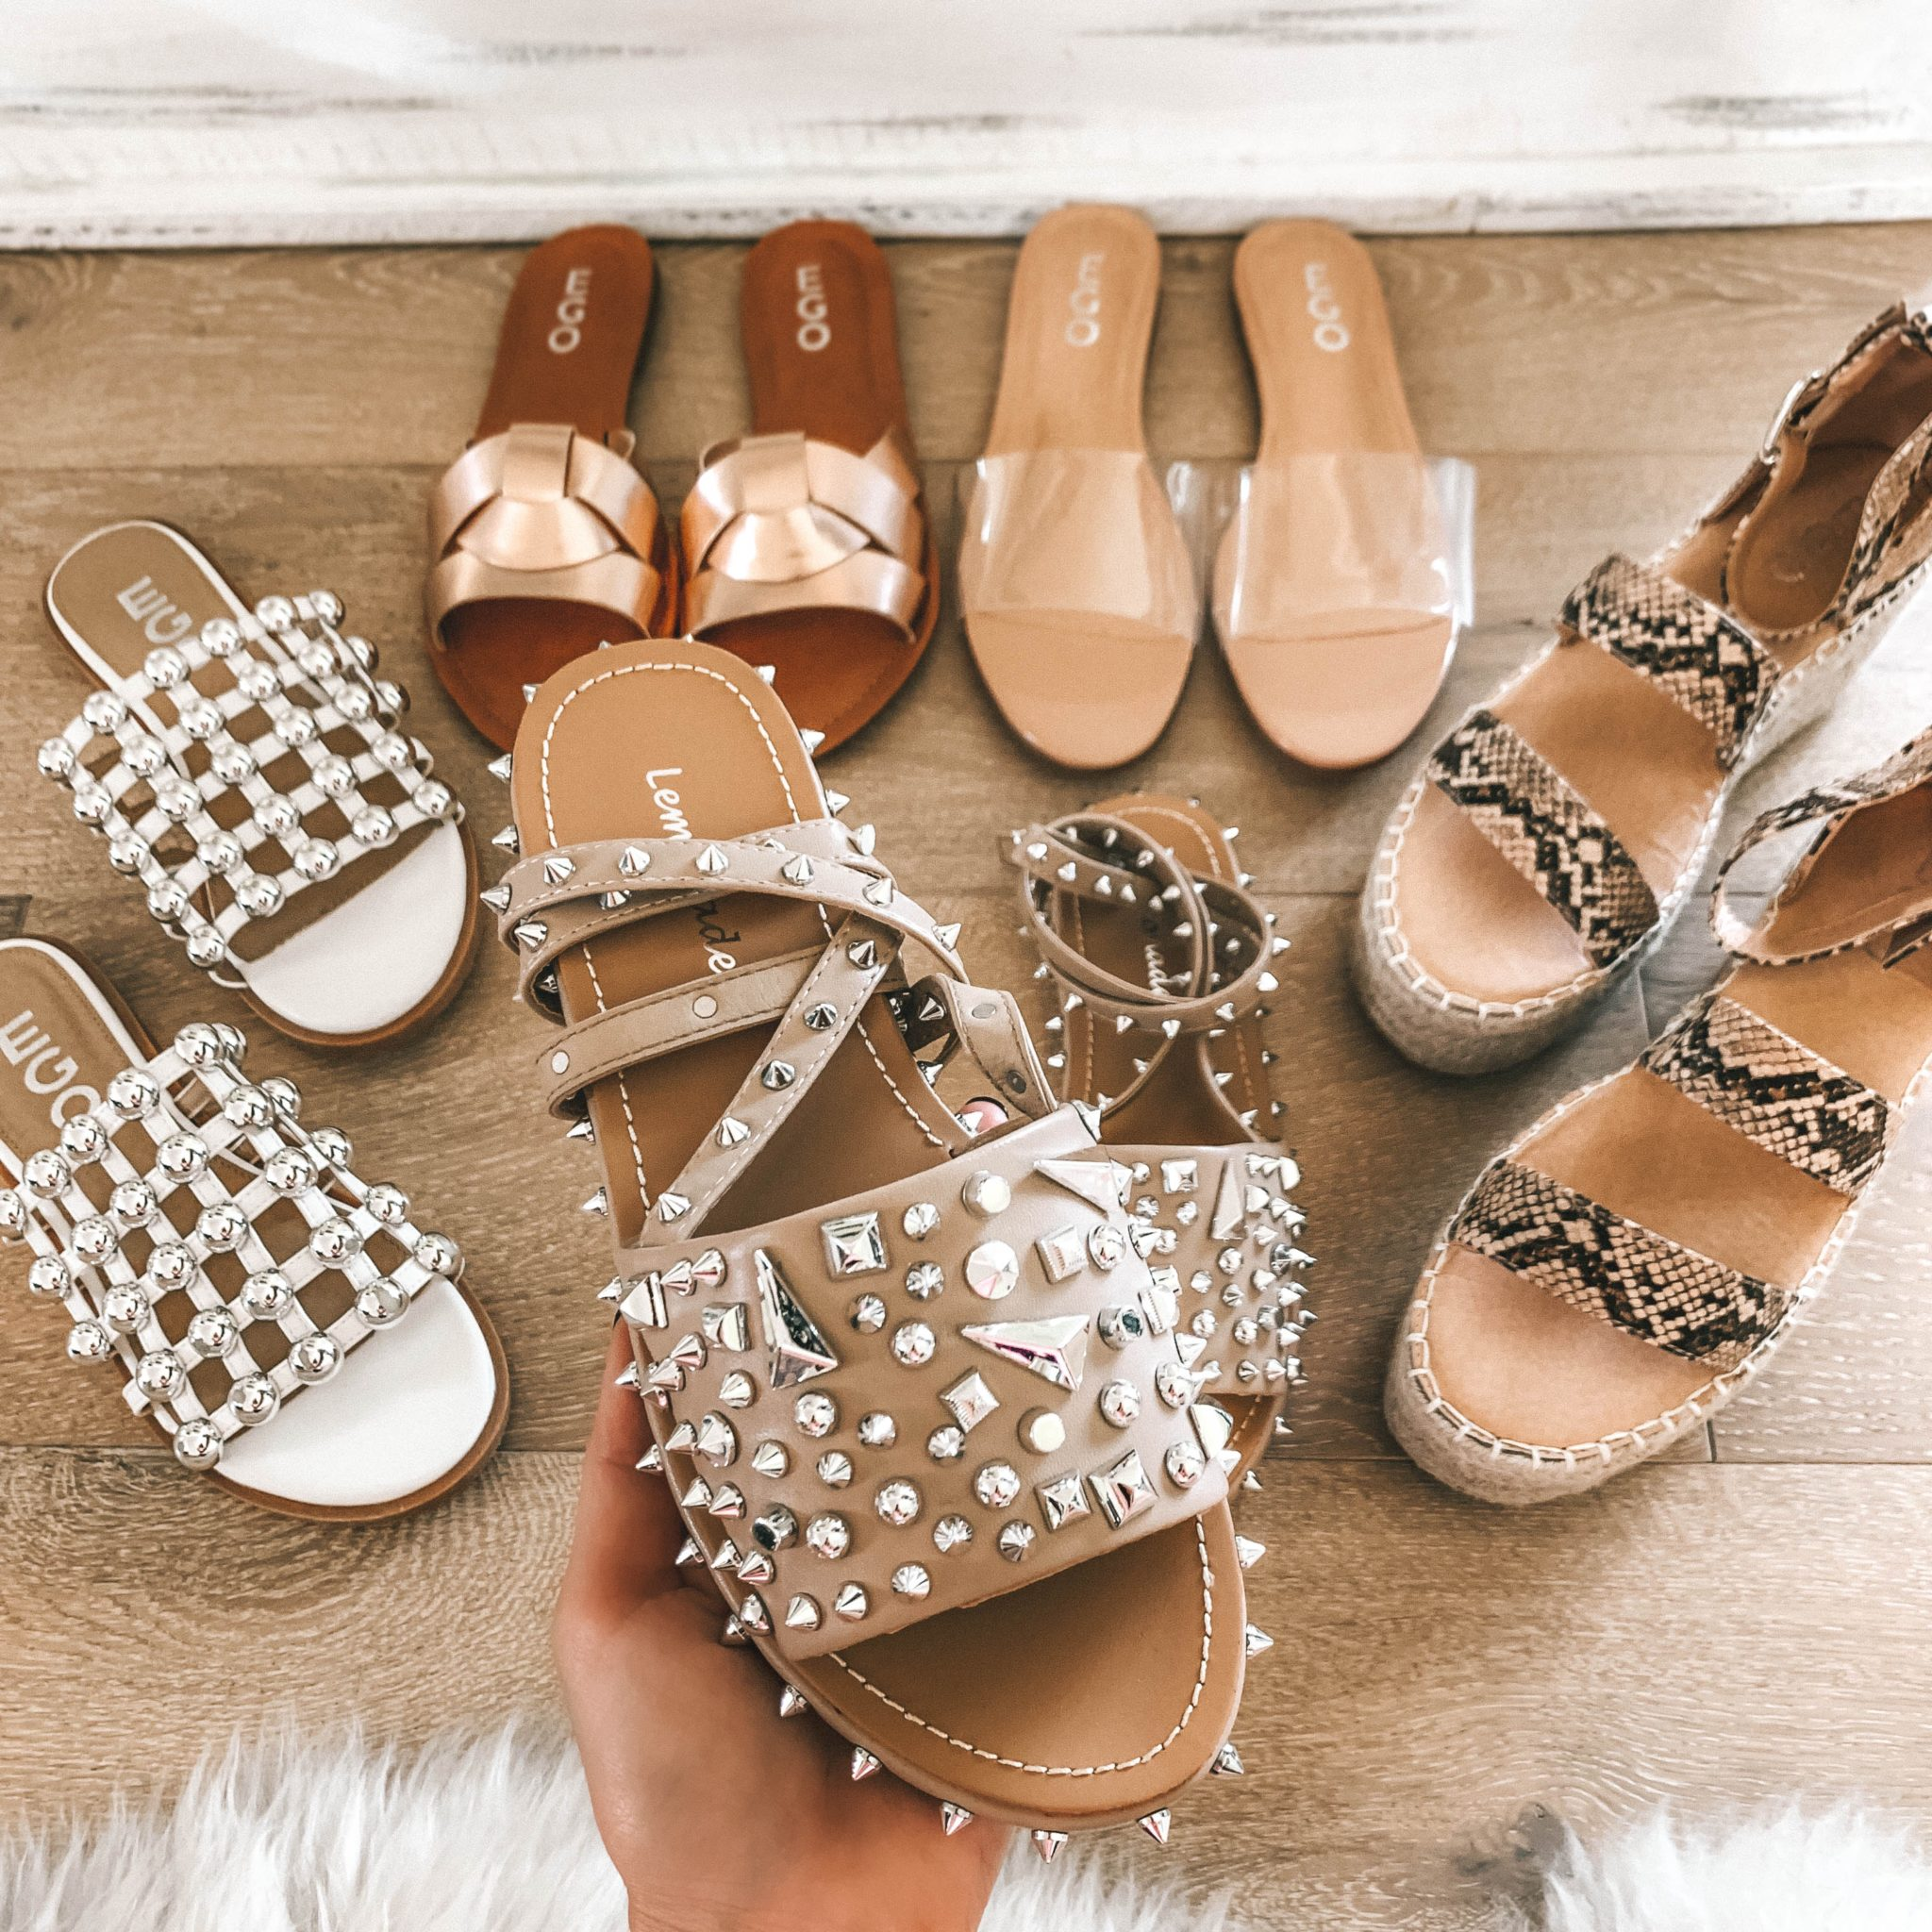 5 Must Have Affordable EGO Sandals for Summer by popular Austin fashion blog, Dressed to Kill: image of woman holding EGO sandals Alpha Lace Up Studded Detail Sandal In Nude Faux Leather.